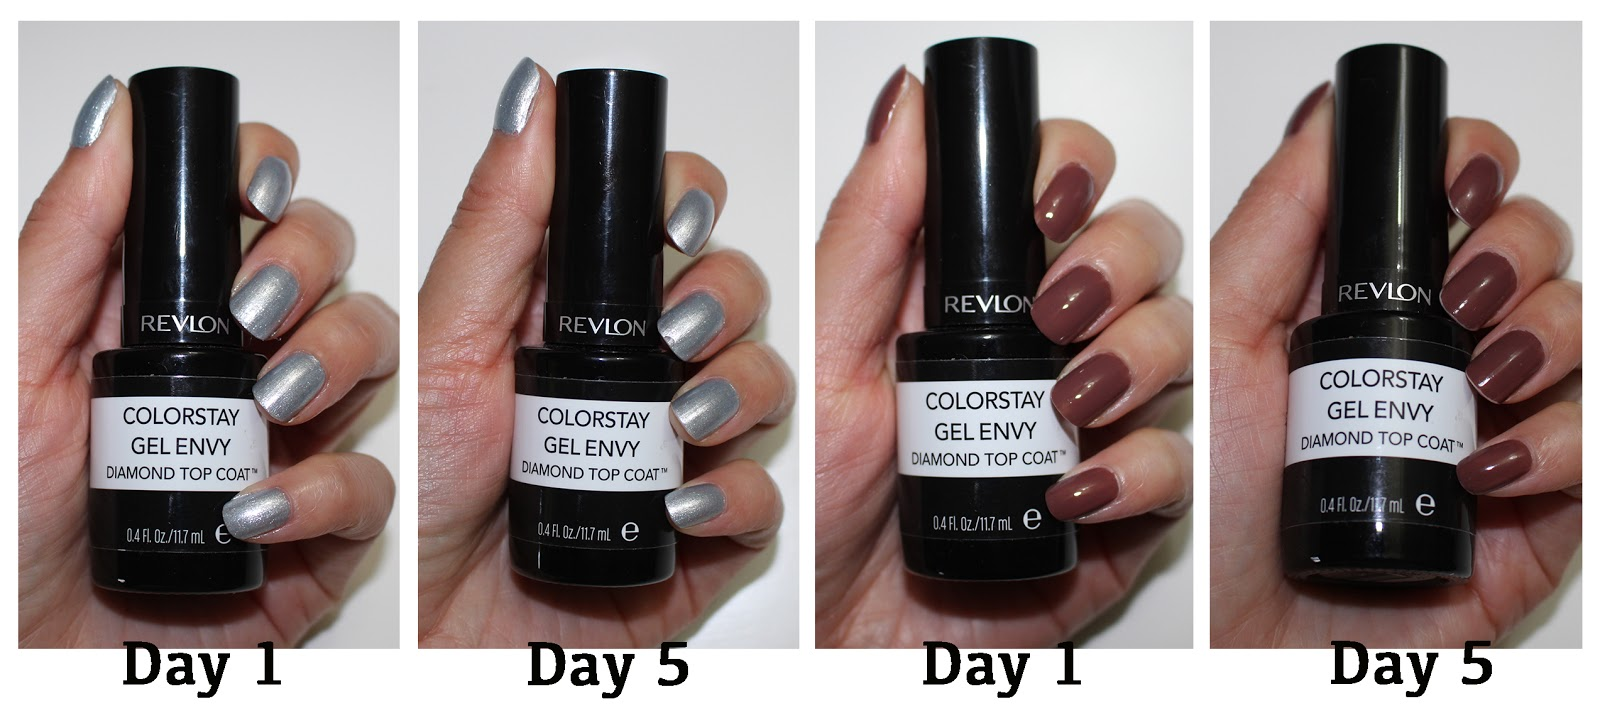 Revlon Colorstay Gel Envy Diamond Top Coat & \